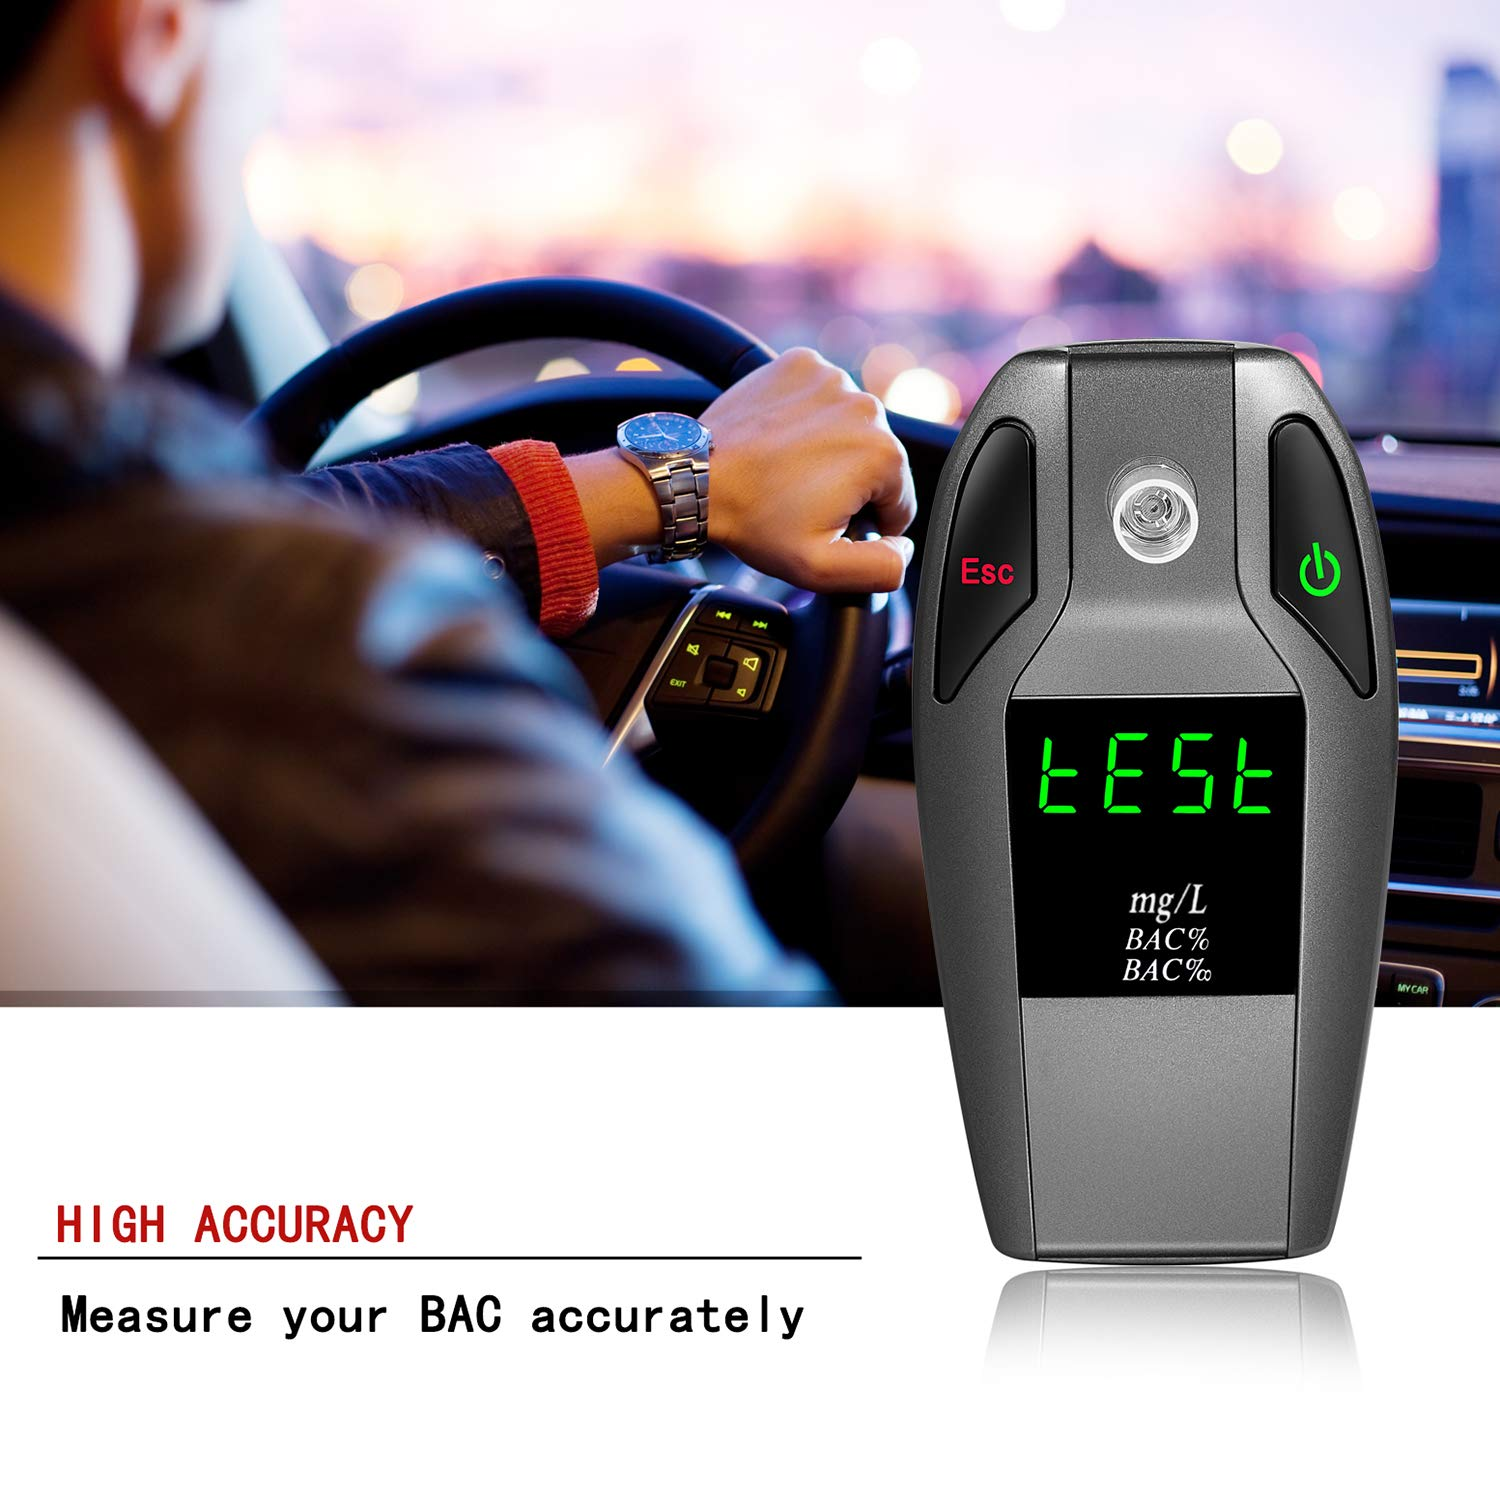 JASTEK Breathalyzer, [2019 New Version] Fuel Cell Sensor Digital Breath Alcohol Tester and Professional Grade Blood Alcohol Content Detector Made of Zinc Alloy by JASTEK (Image #2)